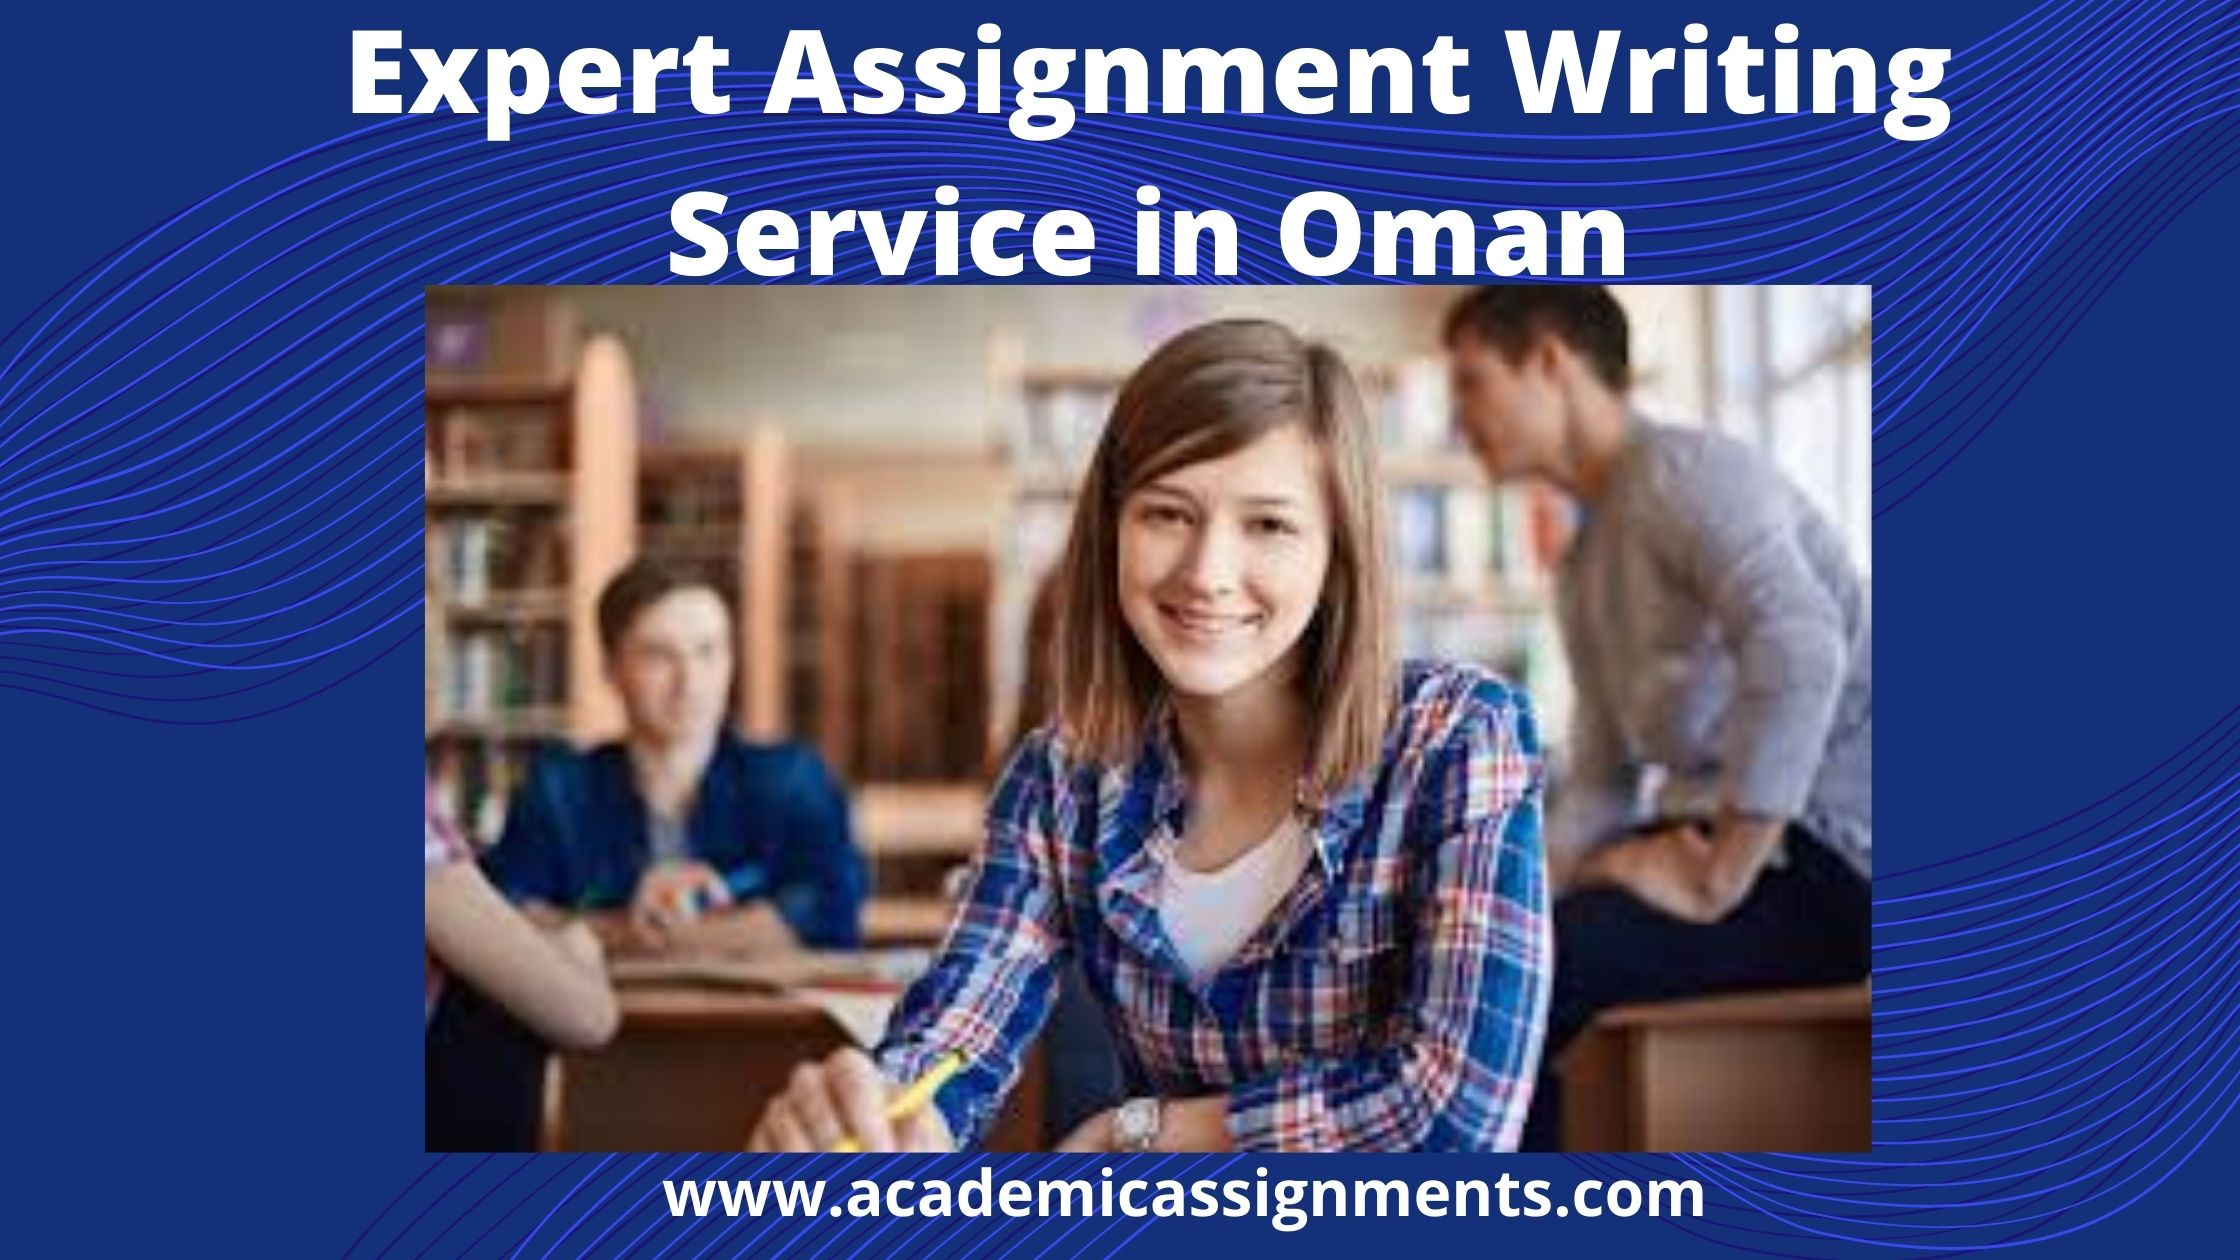 Expert Assignment Writing Service in Oman